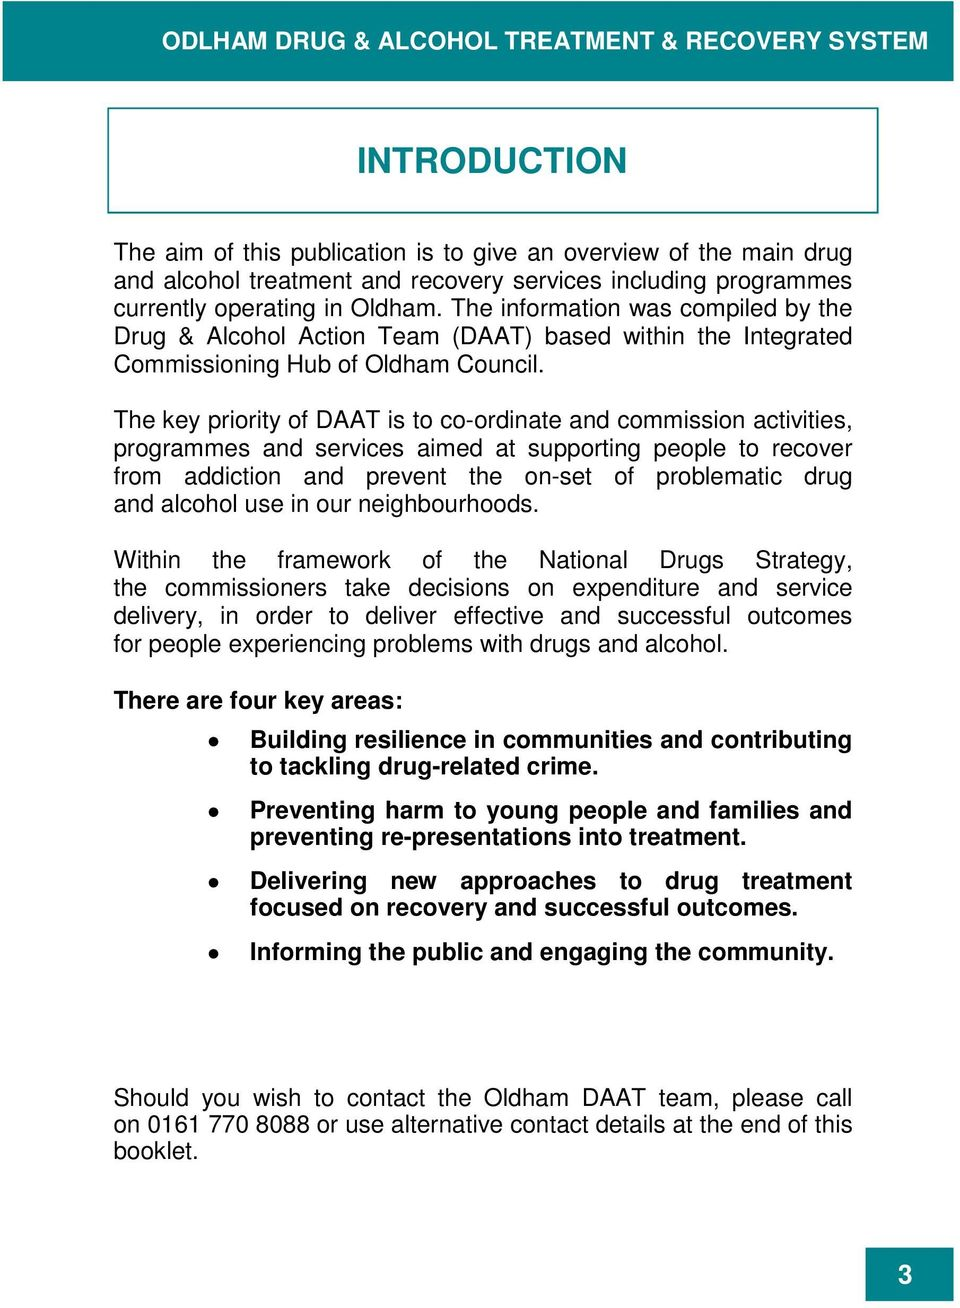 The key priority of DAAT is to co-ordinate and commission activities, programmes and services aimed at supporting people to recover from addiction and prevent the on-set of problematic drug and